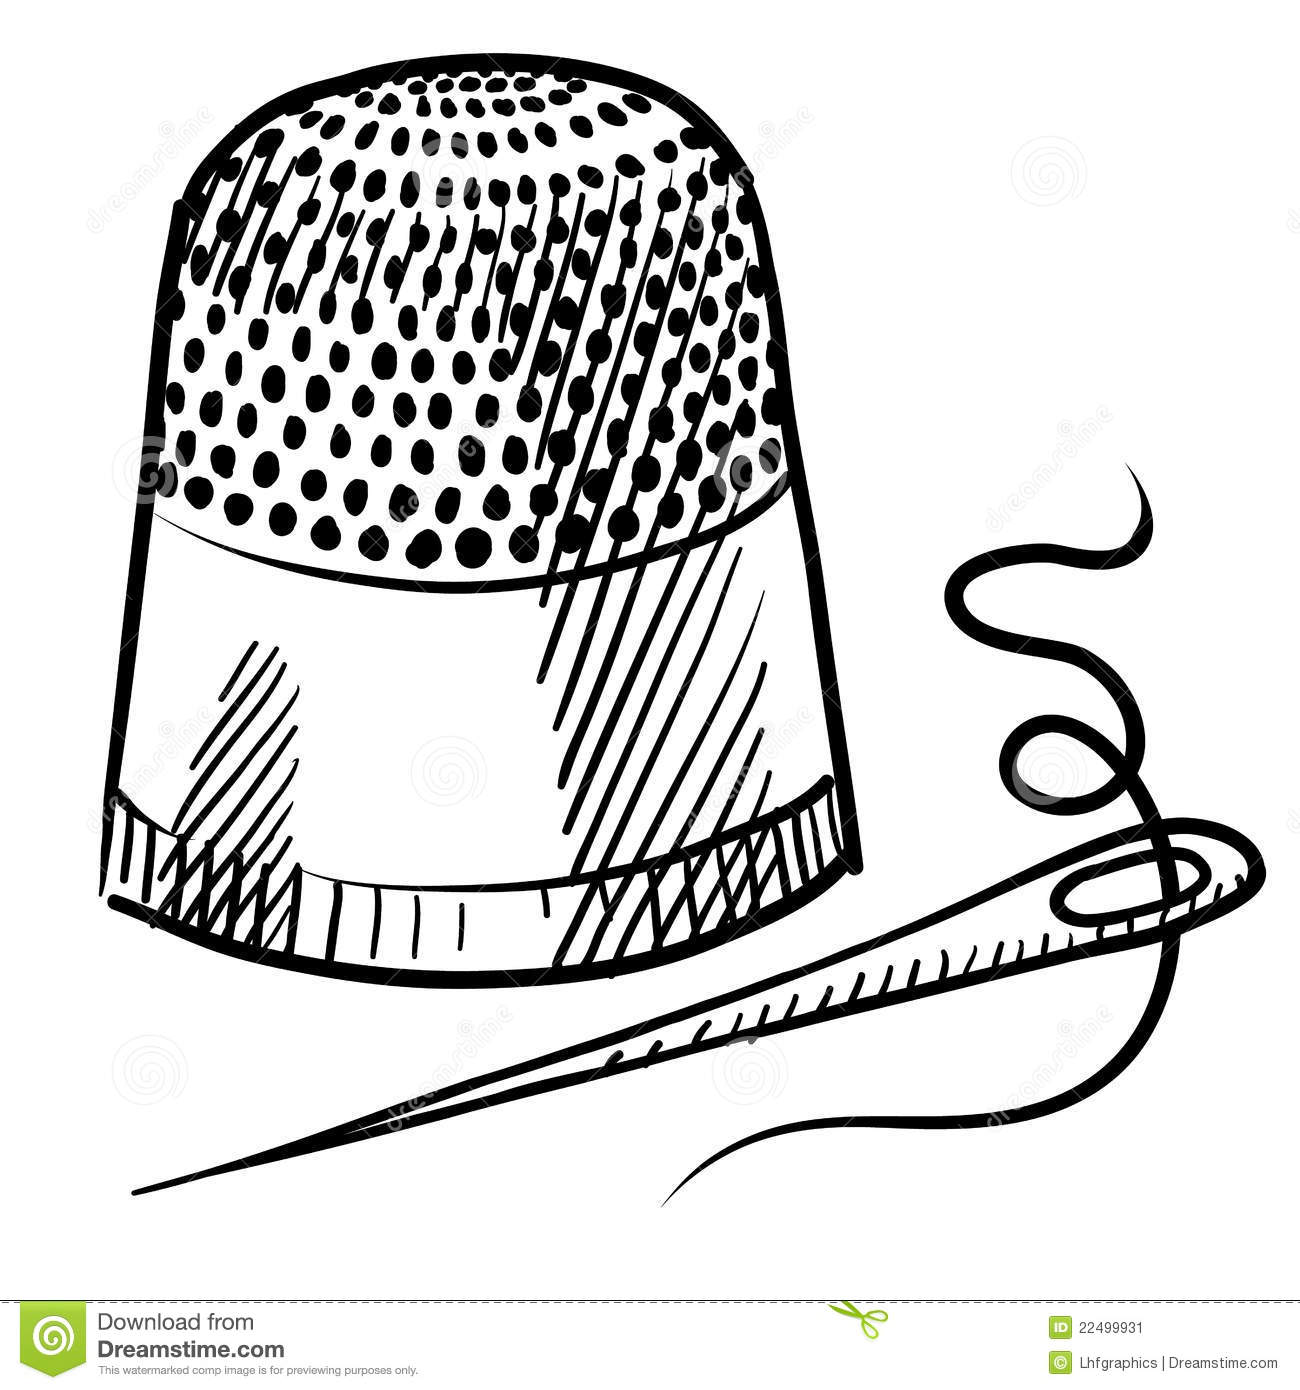 Doodle style thimble and needle illustration in vector format suitable ...